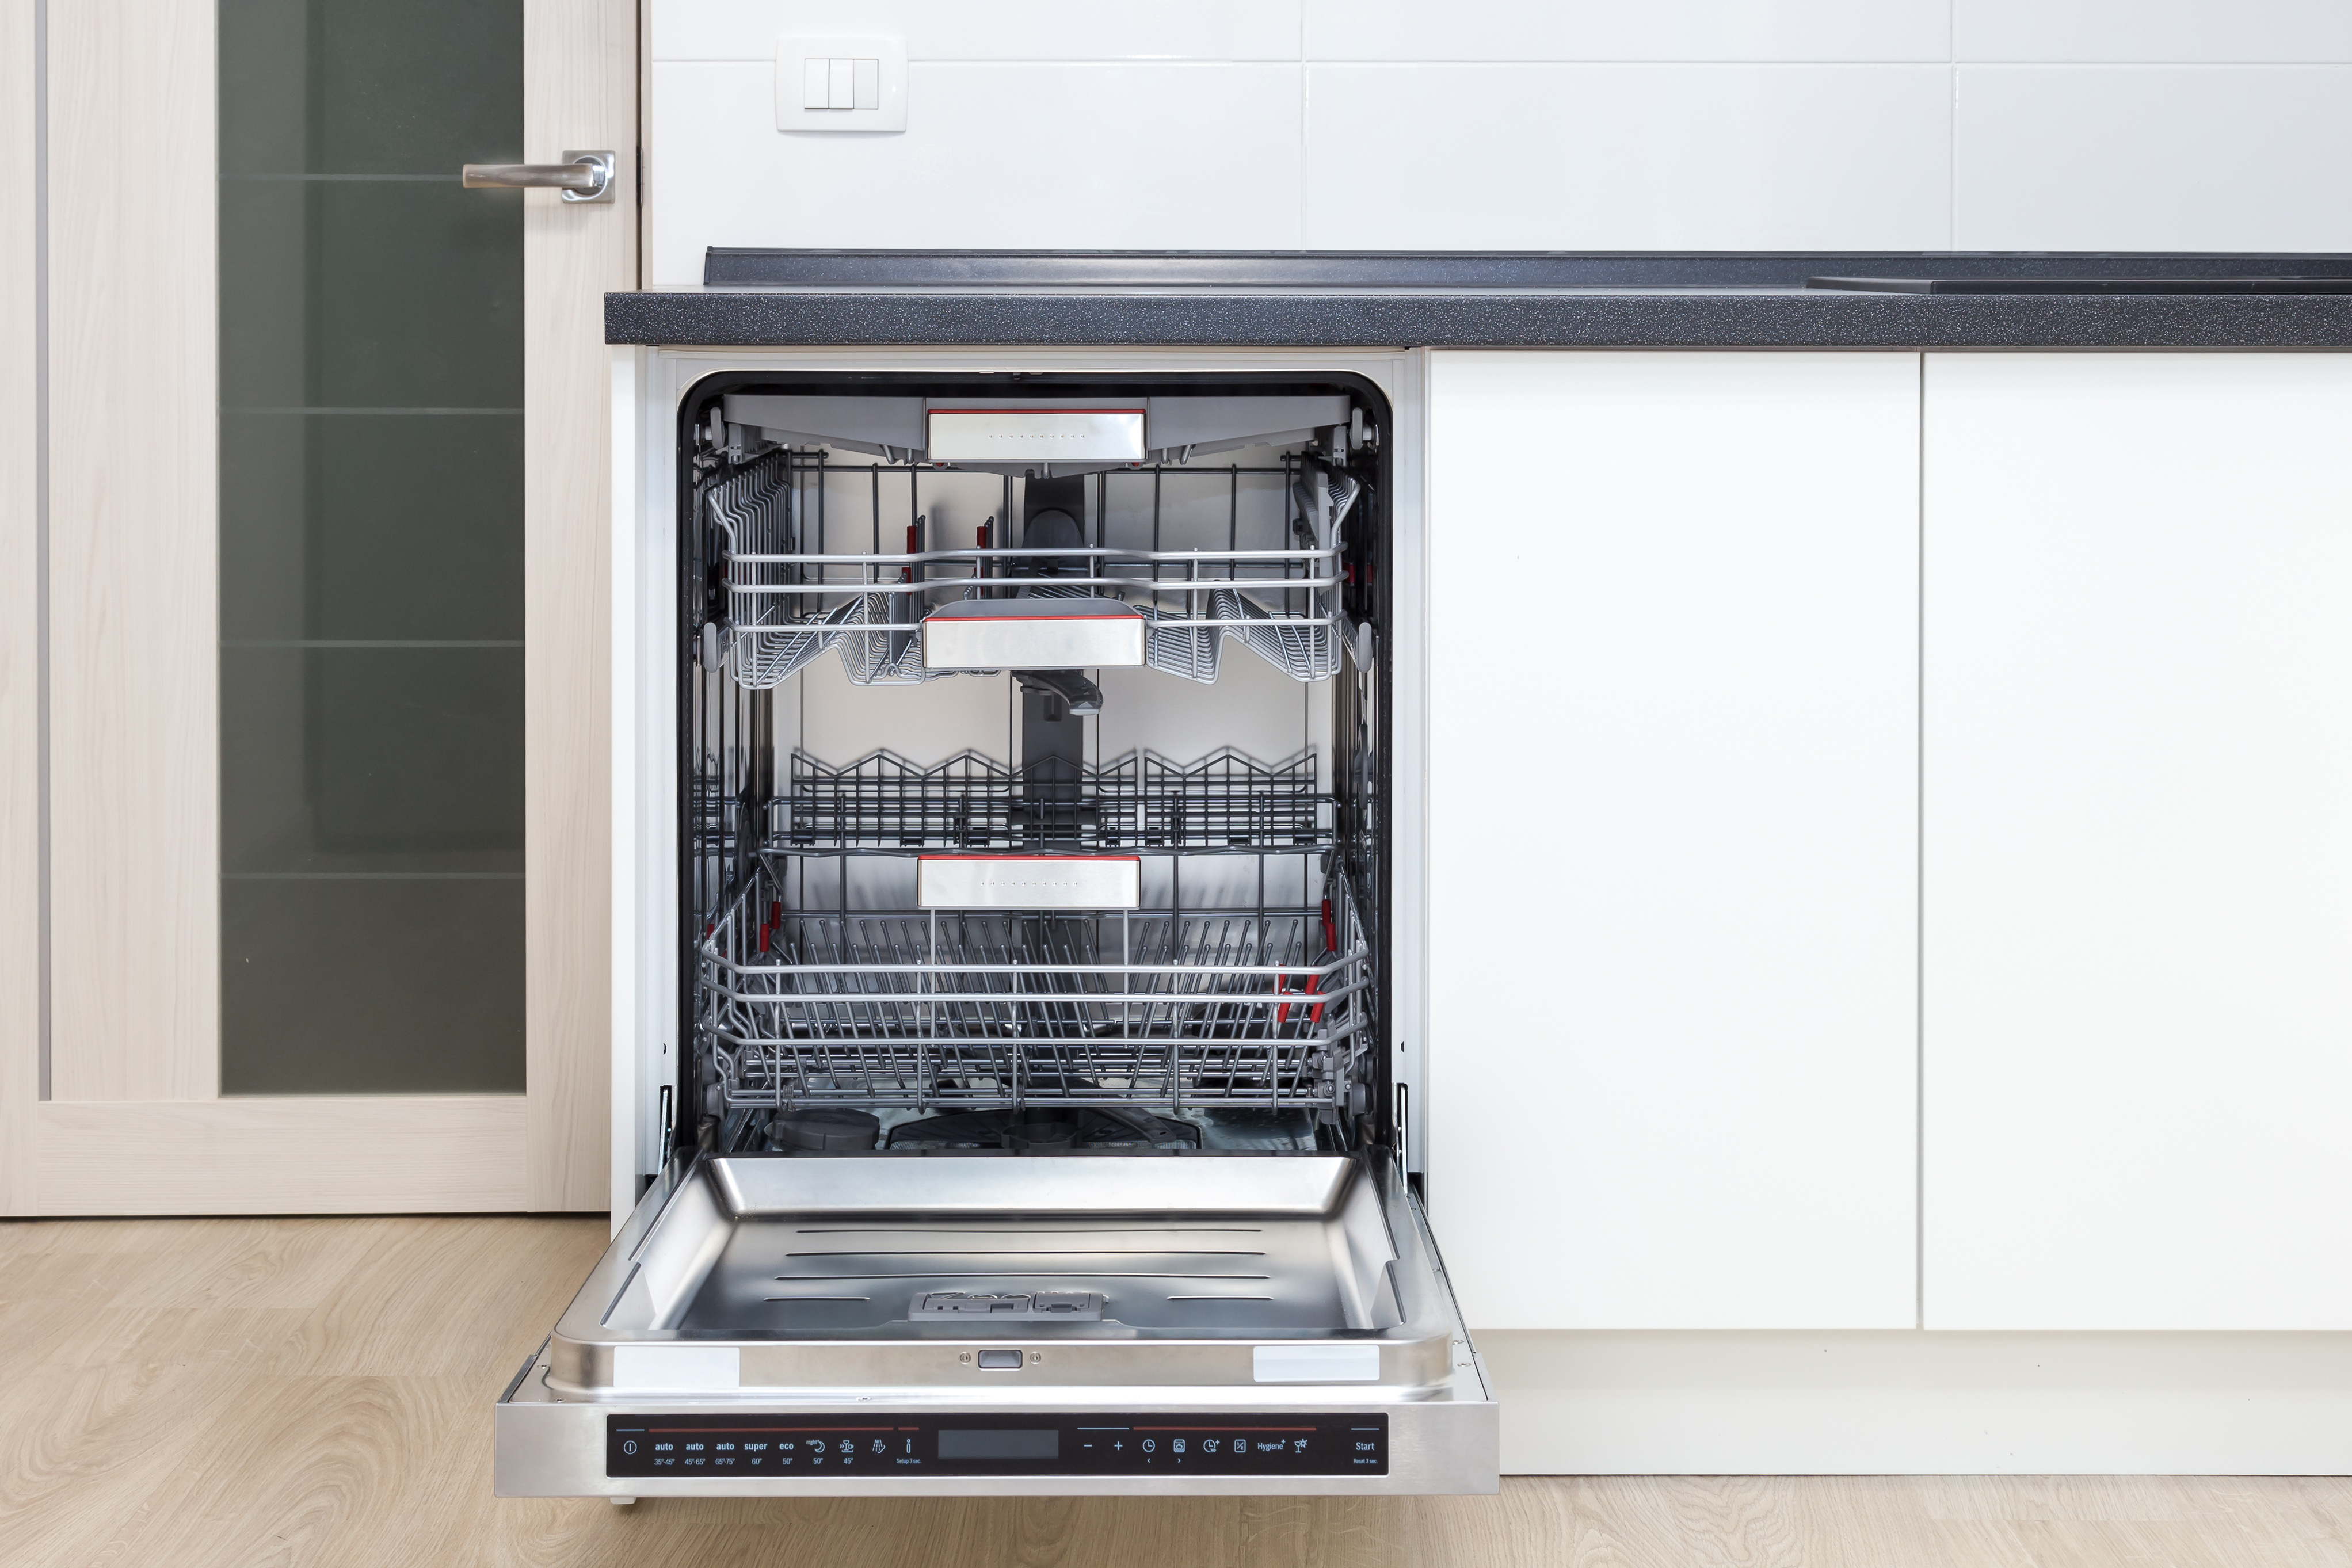 Home appliance maintenance tips for dishwashers